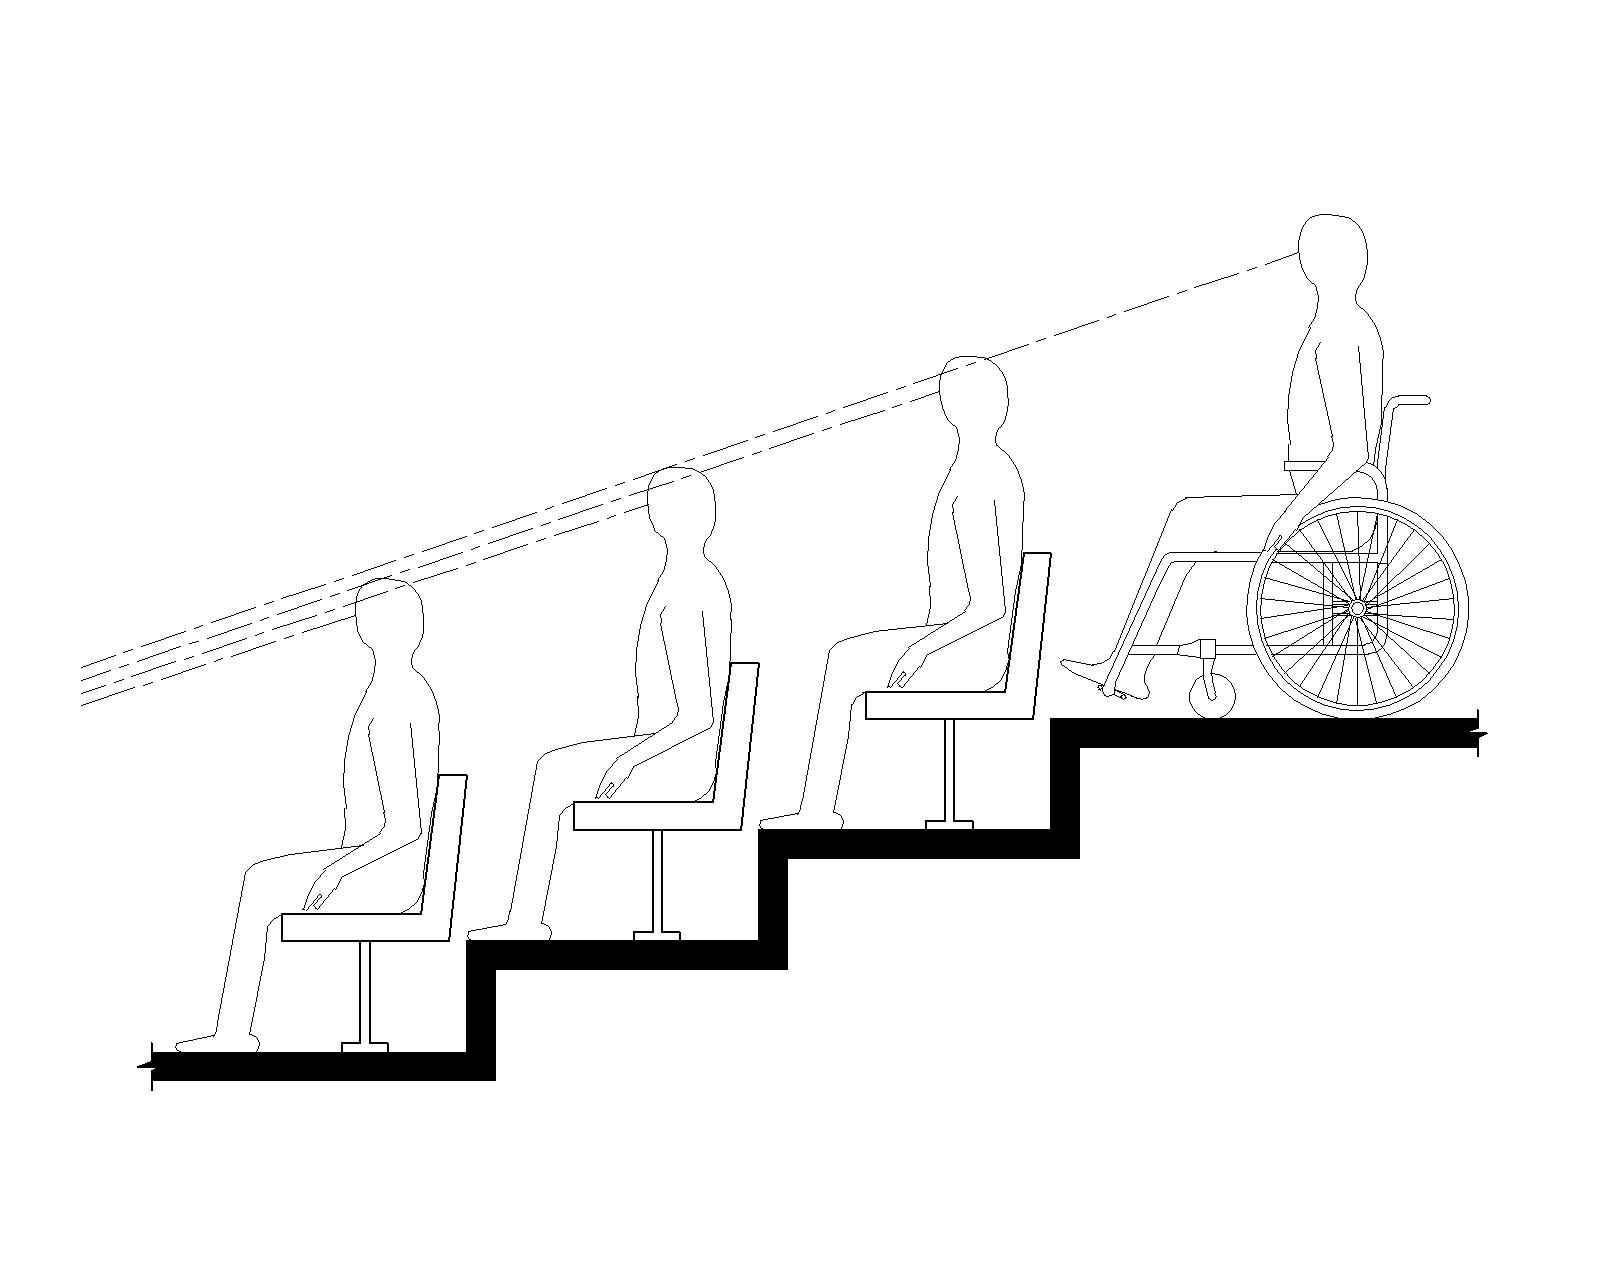 Elevation drawing shows a person using a wheelchair on an upper level of tiered seating having a line of sight between the heads of spectators seated in front.